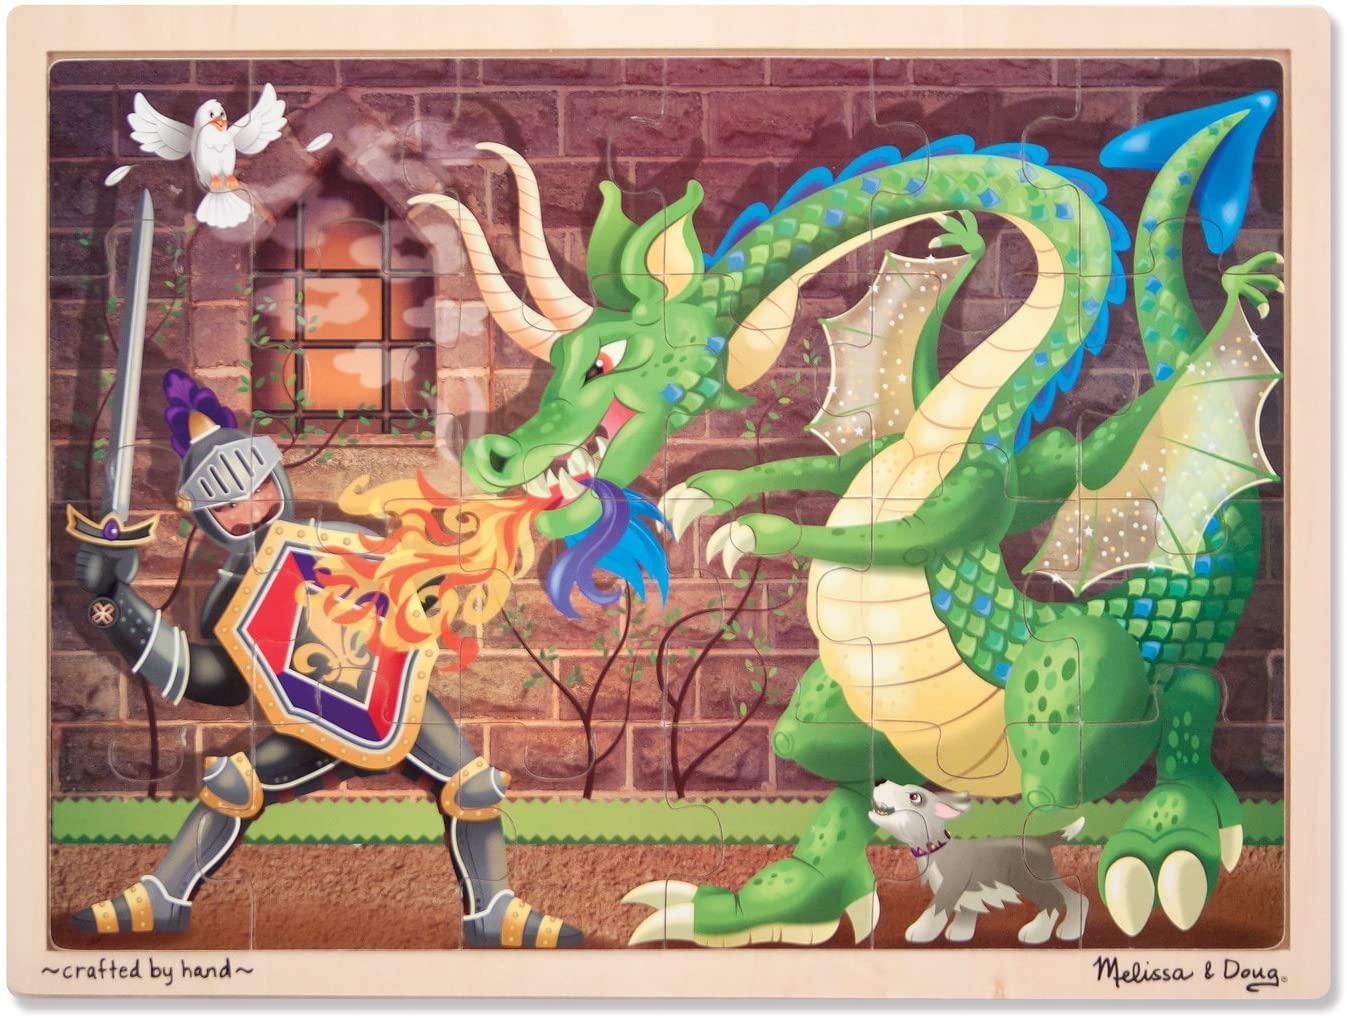 Melissa & Doug Knight vs. Dragon Wooden Jigsaw Puzzle With Storage Tray (48 pcs)